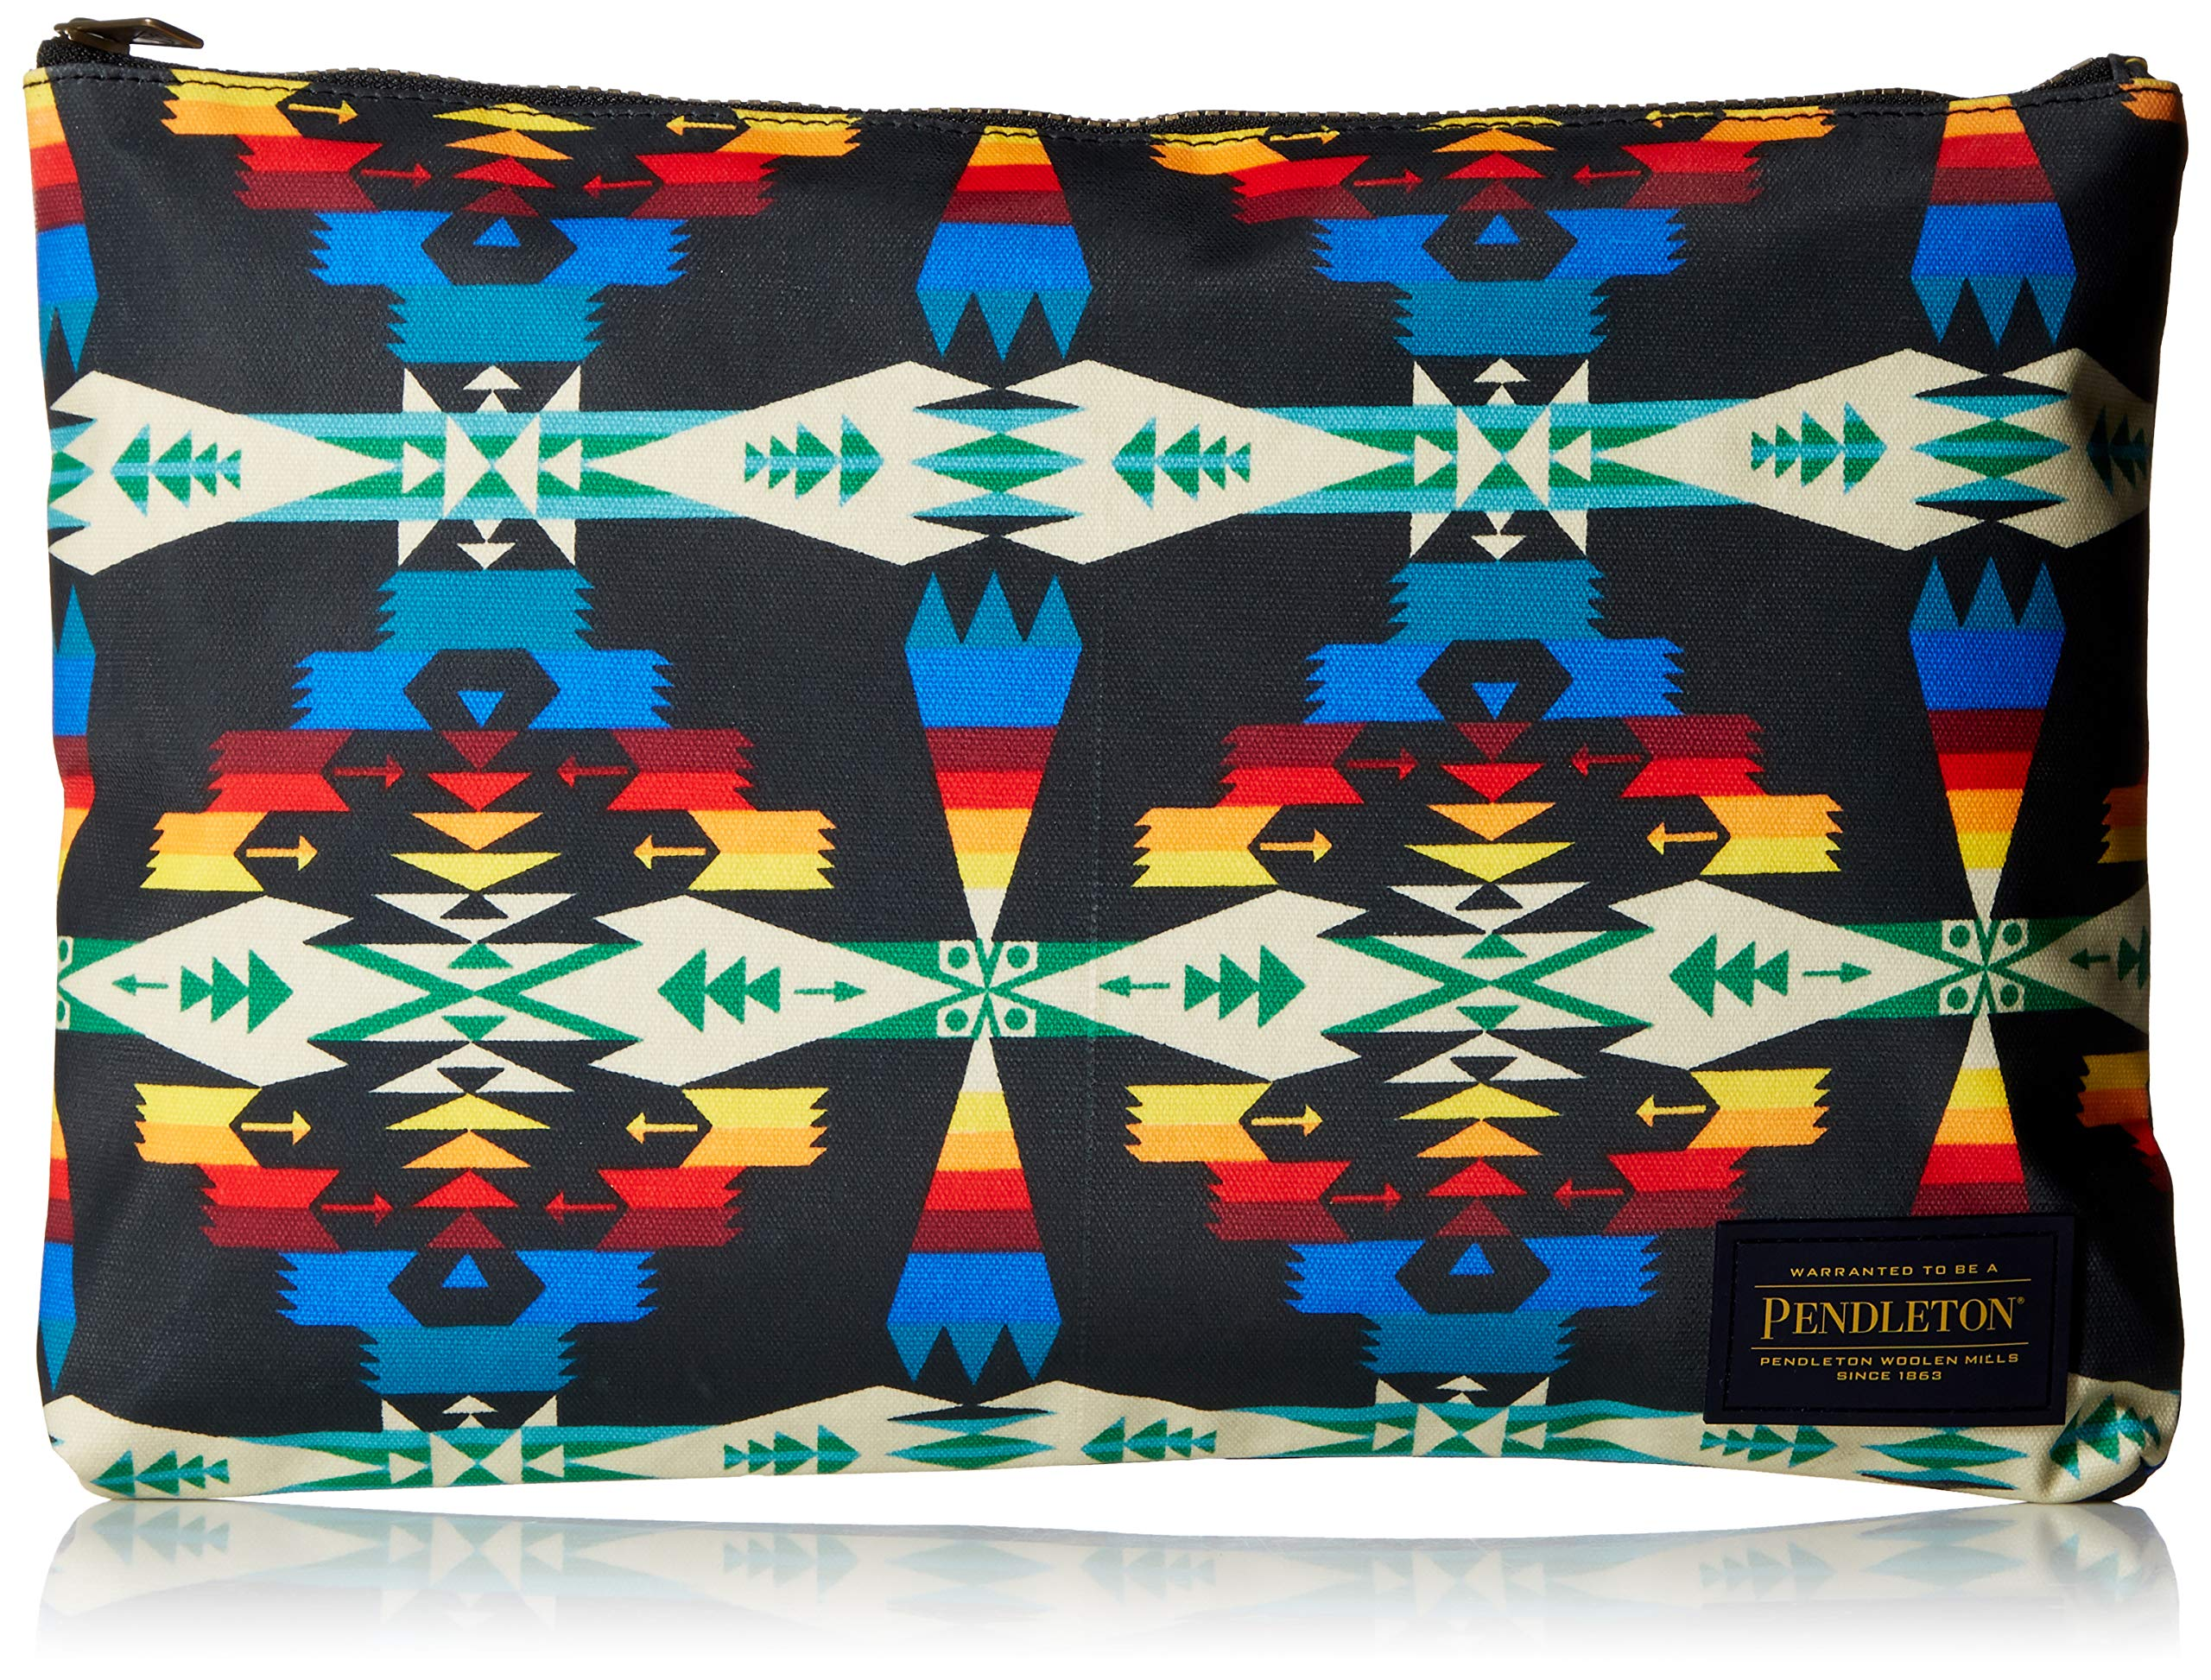 Pendleton Women's Canopy Canvas Big Zip Pouch, Tucson Black, One Size by Pendleton